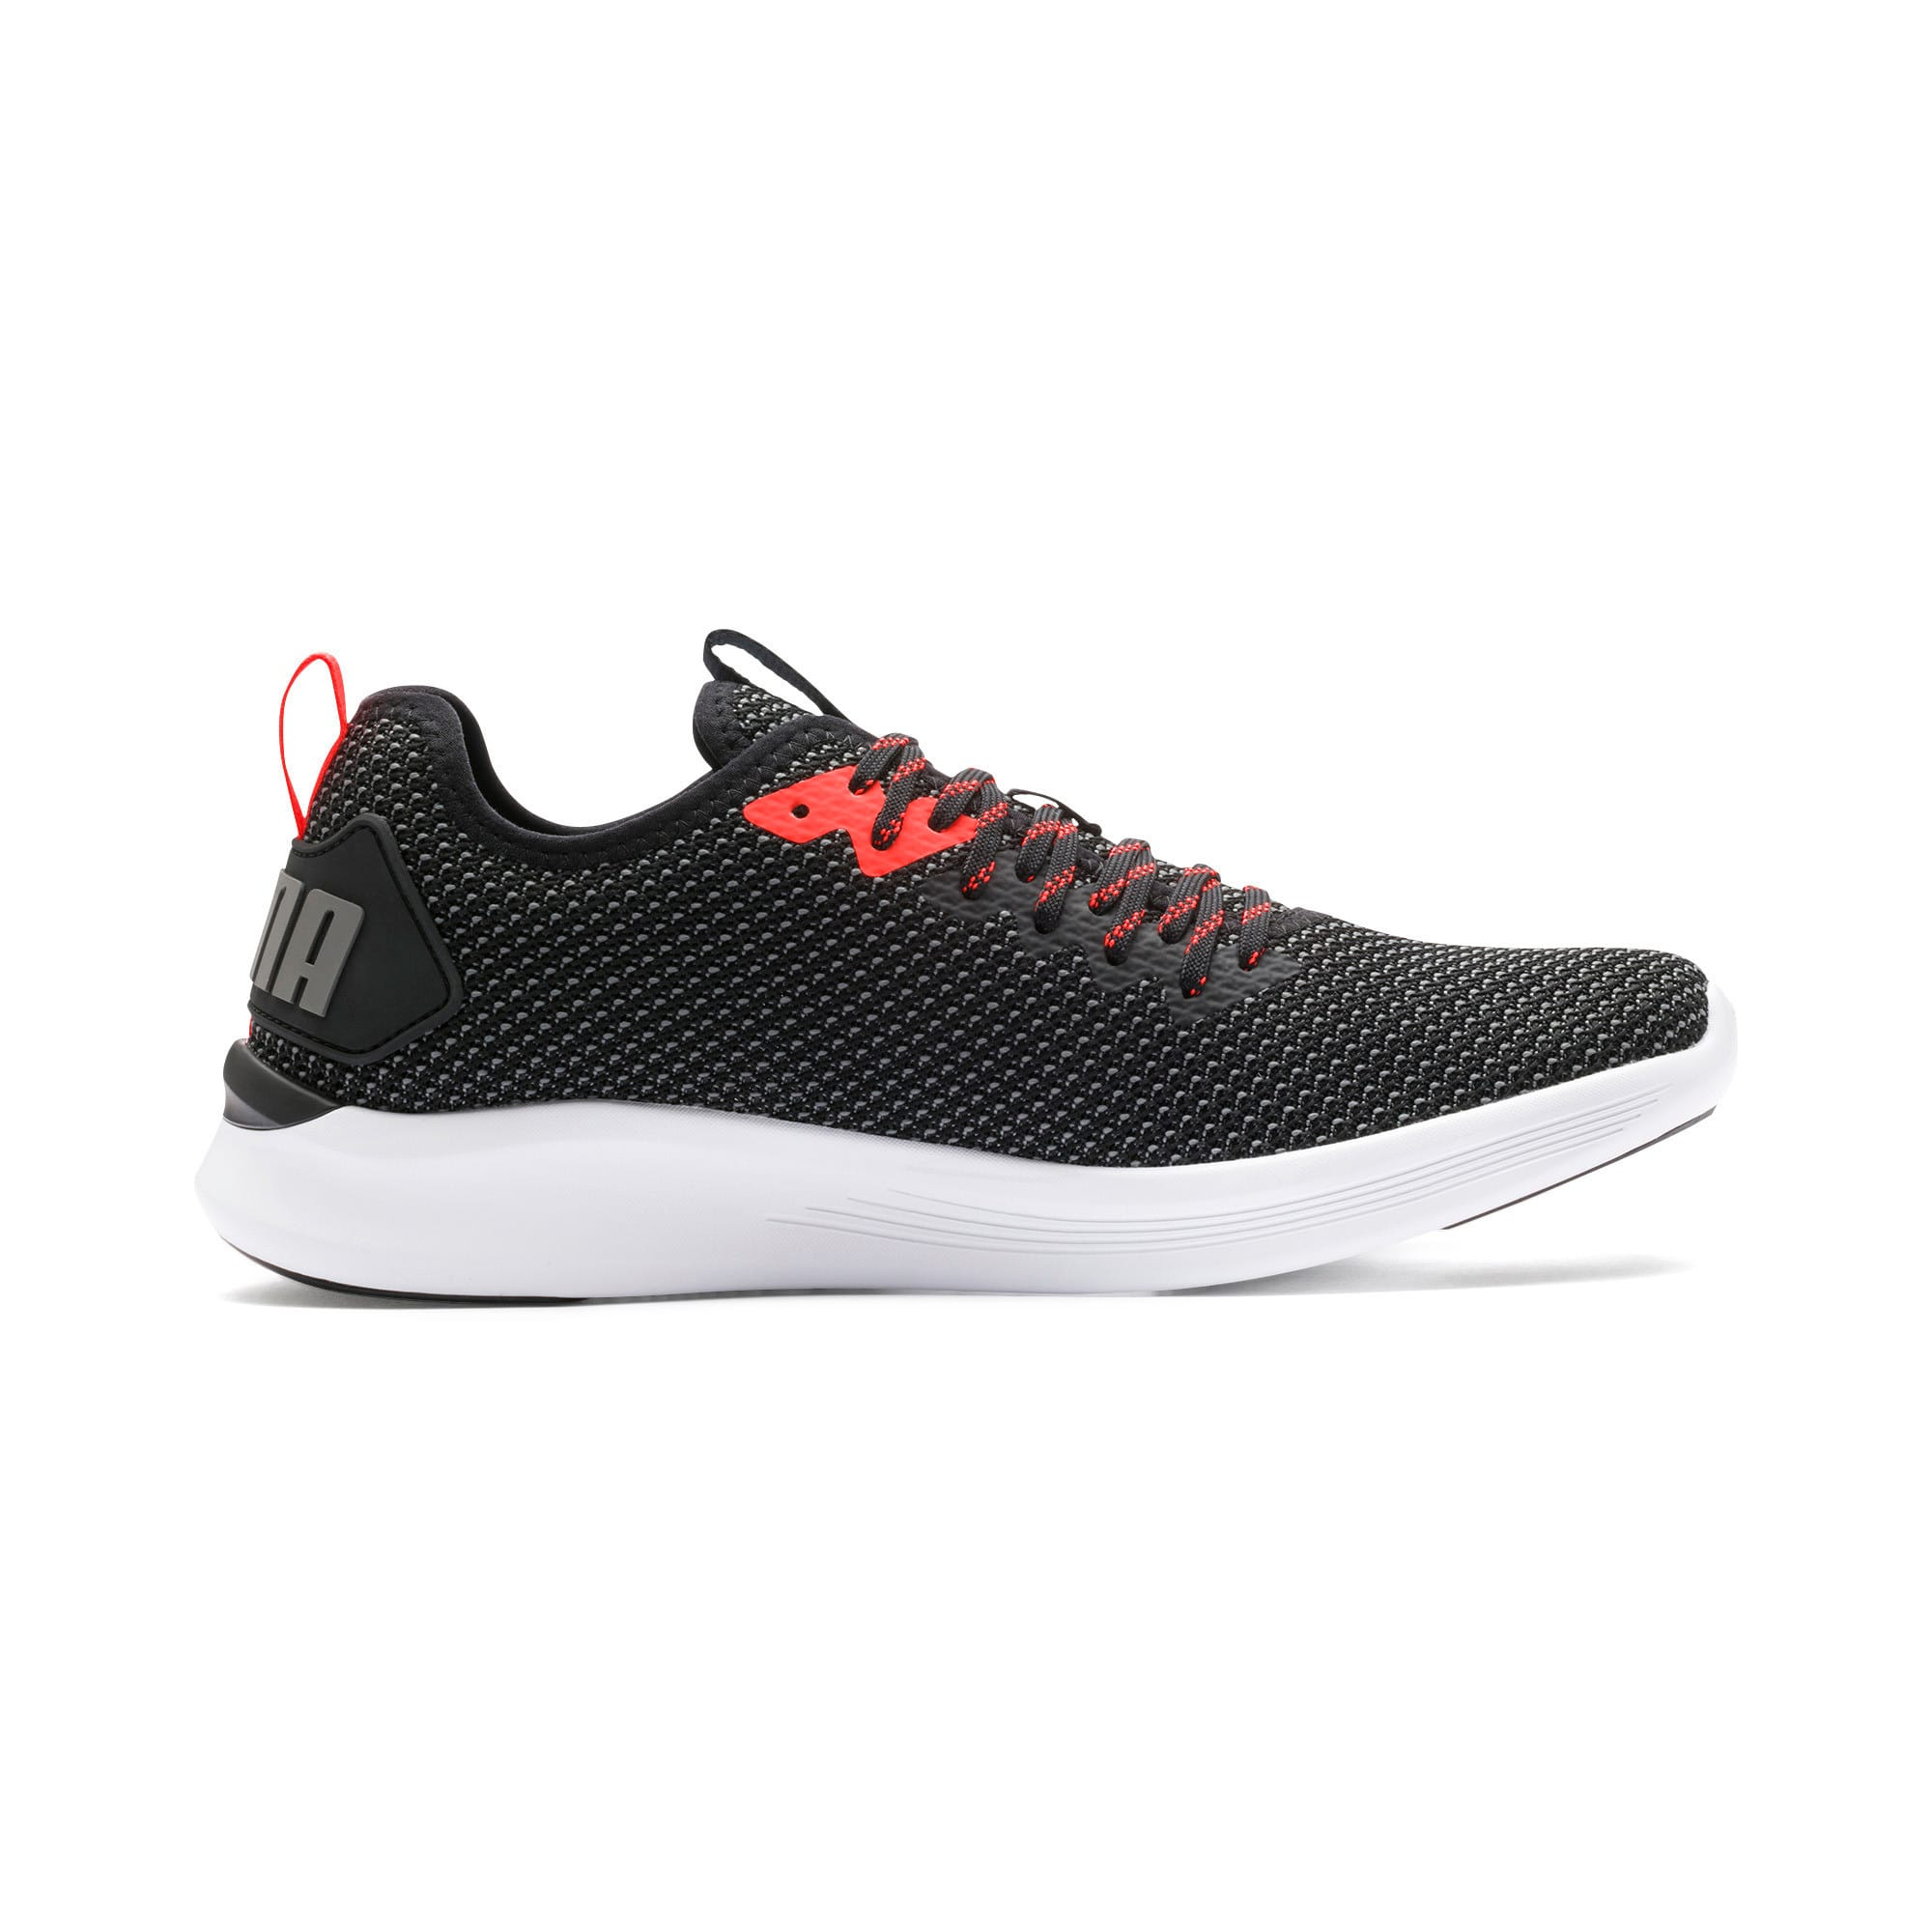 Thumbnail 7 of IGNITE Flash FS Men's Running Shoes, Puma Black-Nrgy Red, medium-IND